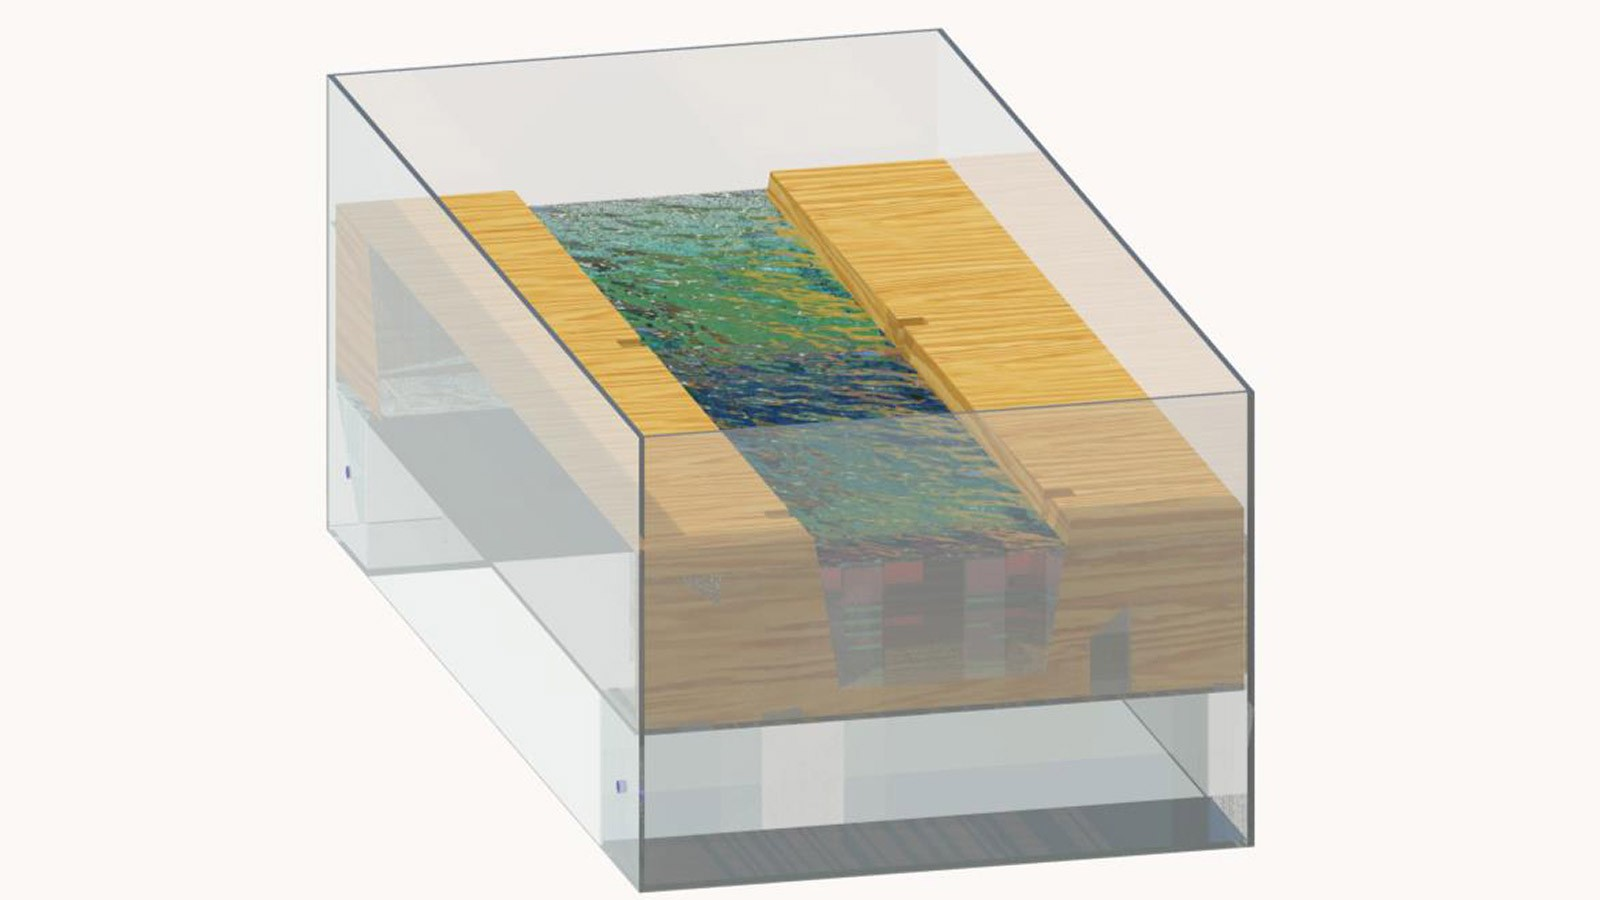 A rendering of the model design with water.